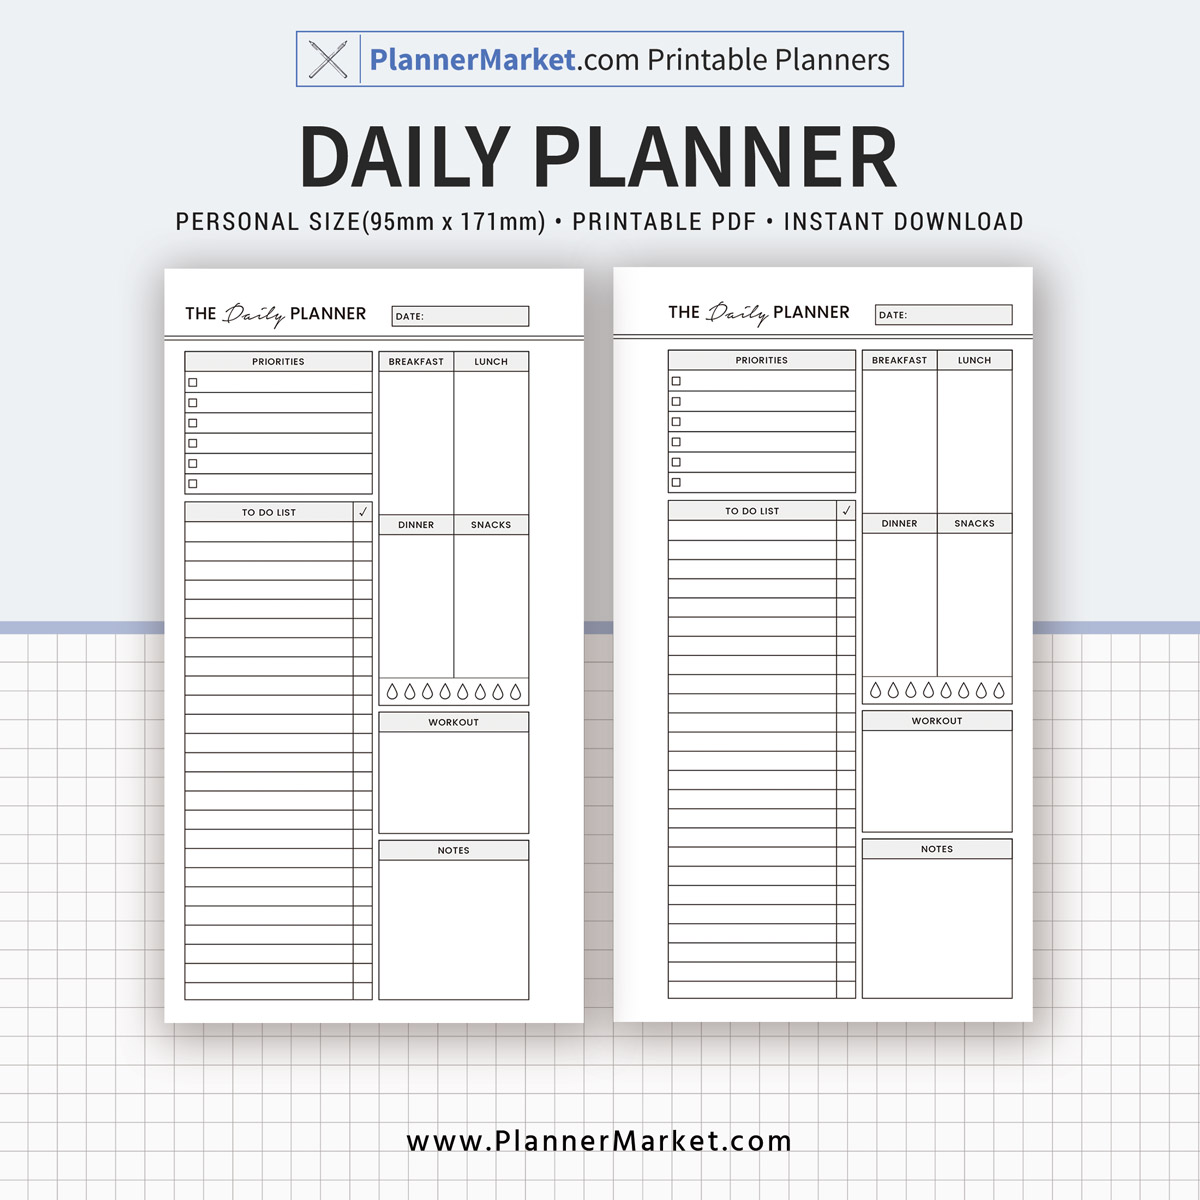 image regarding Daily Planner Printable referred to as Day by day Planner, 2019 Planner, Person Dimensions Inserts, Planner Refill, Planner Binder, Printable Planner, Instantaneous Obtain